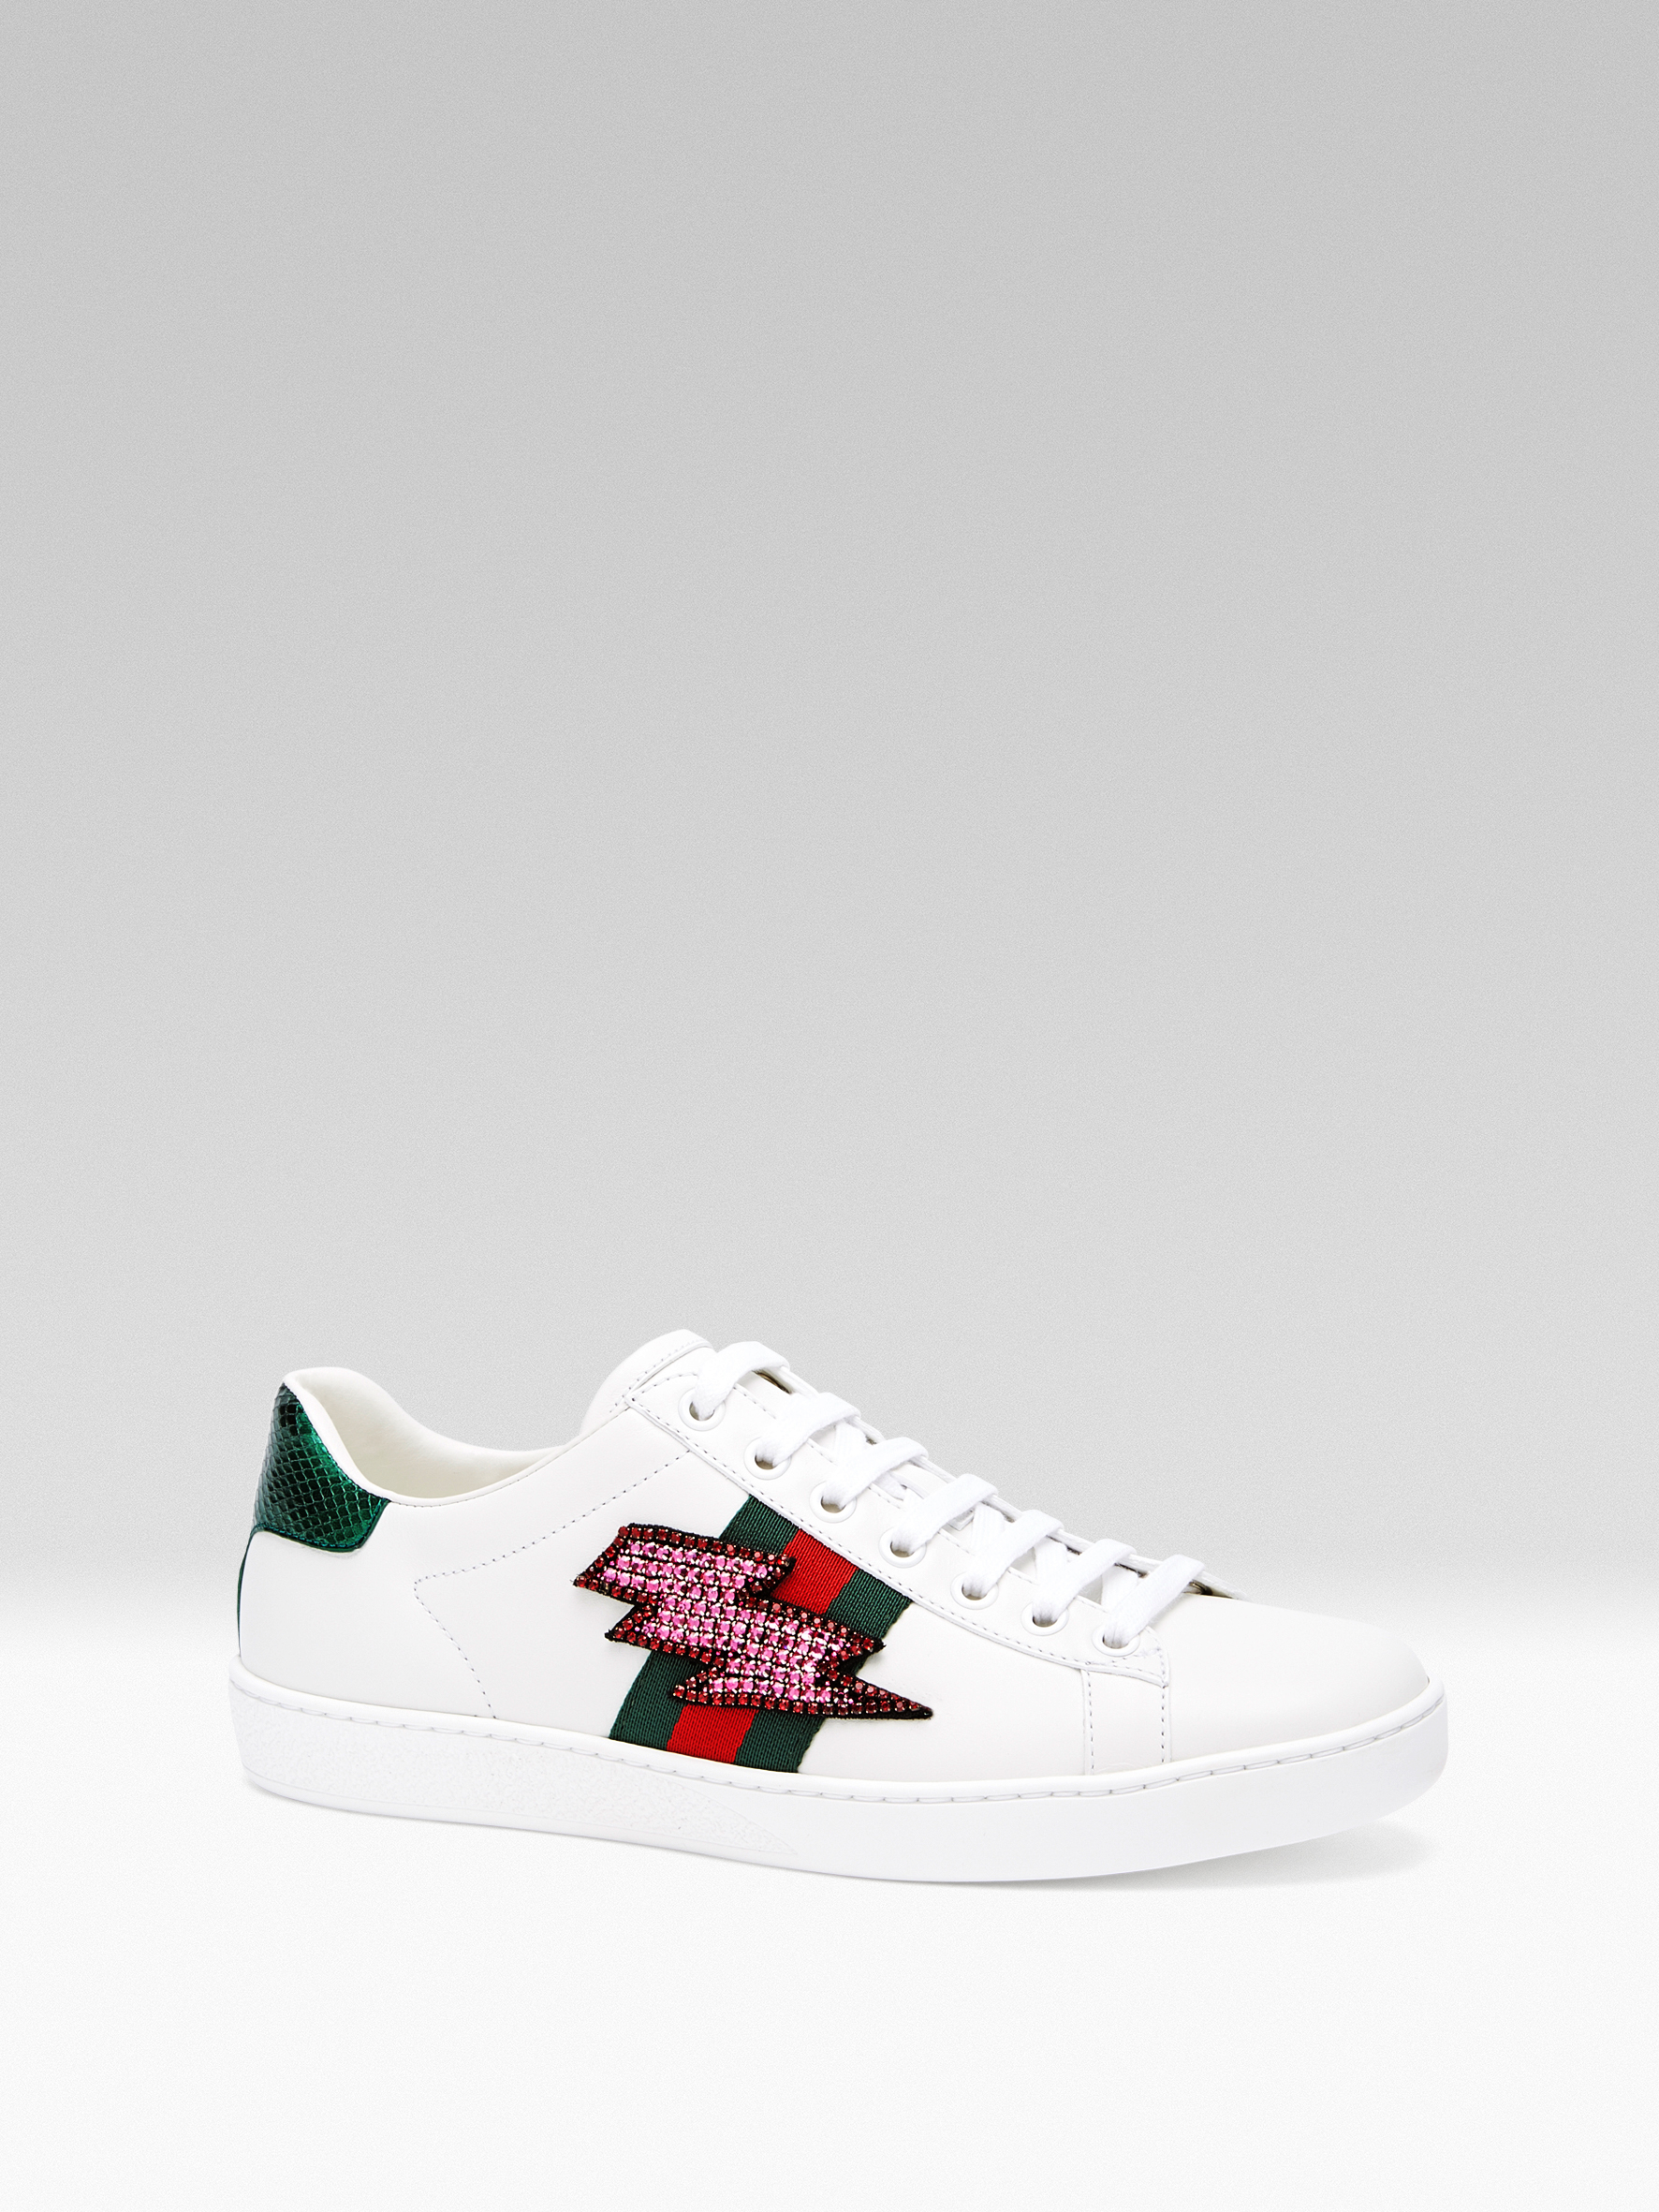 632719048 Gucci Is Releasing New Styles of Their Signature Ace Sneakers - Racked